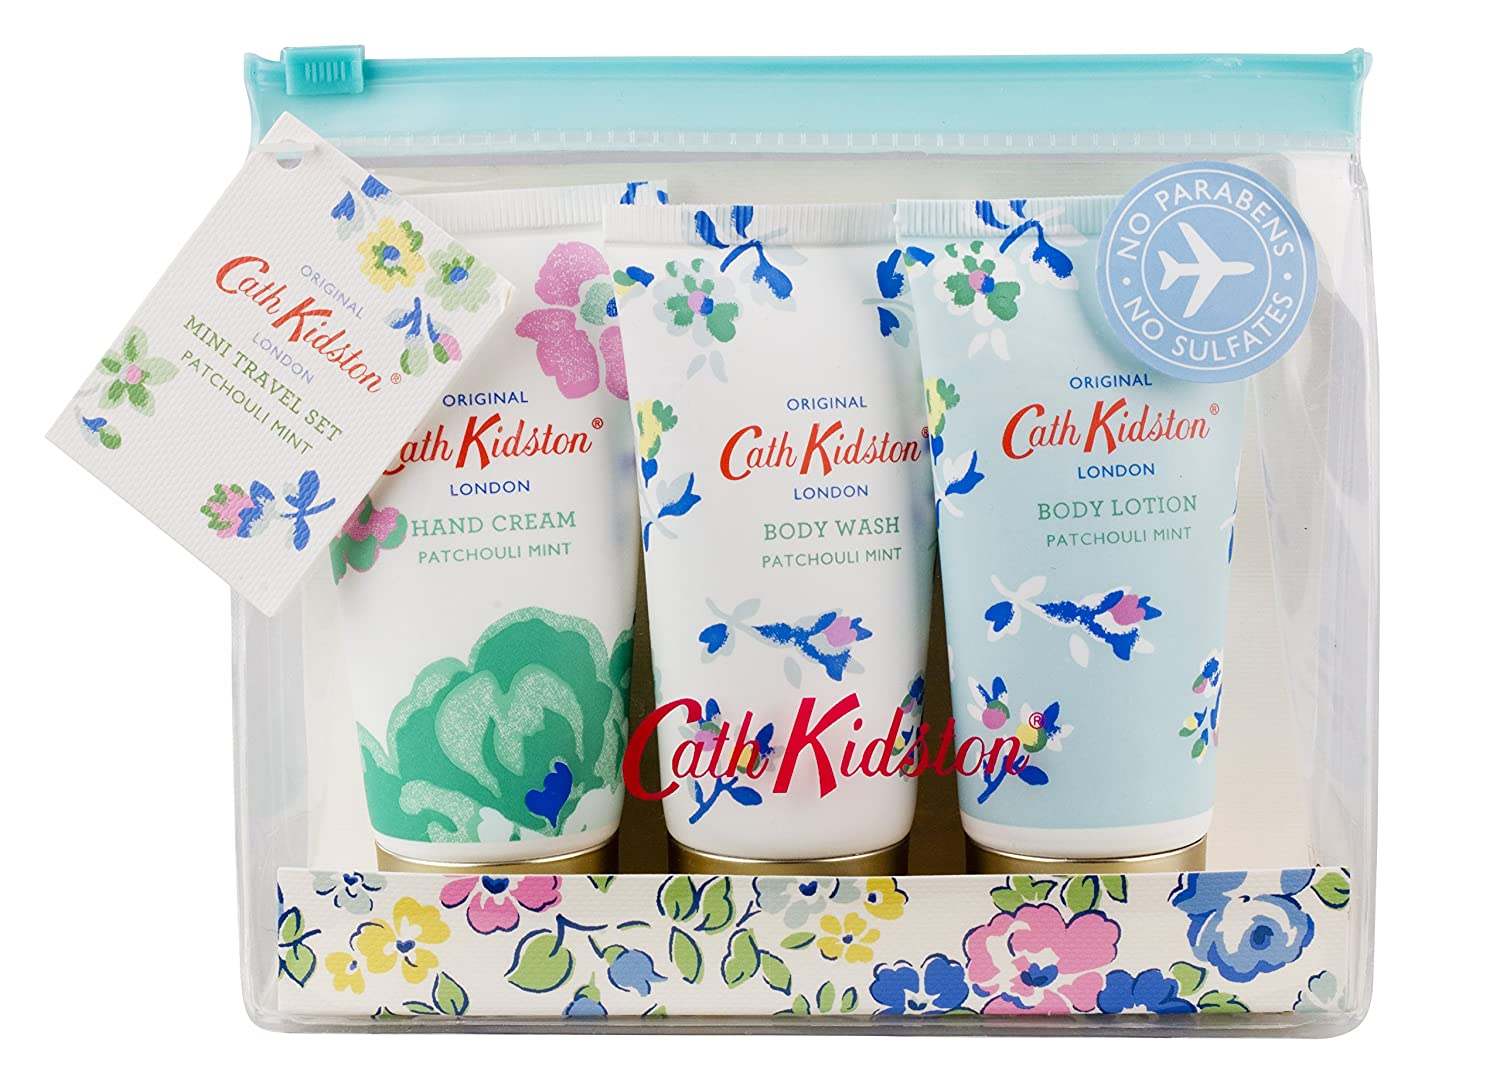 Cath Kidston Patchouli Mint Mini Travel Kit Heathcote & Ivory FG2524